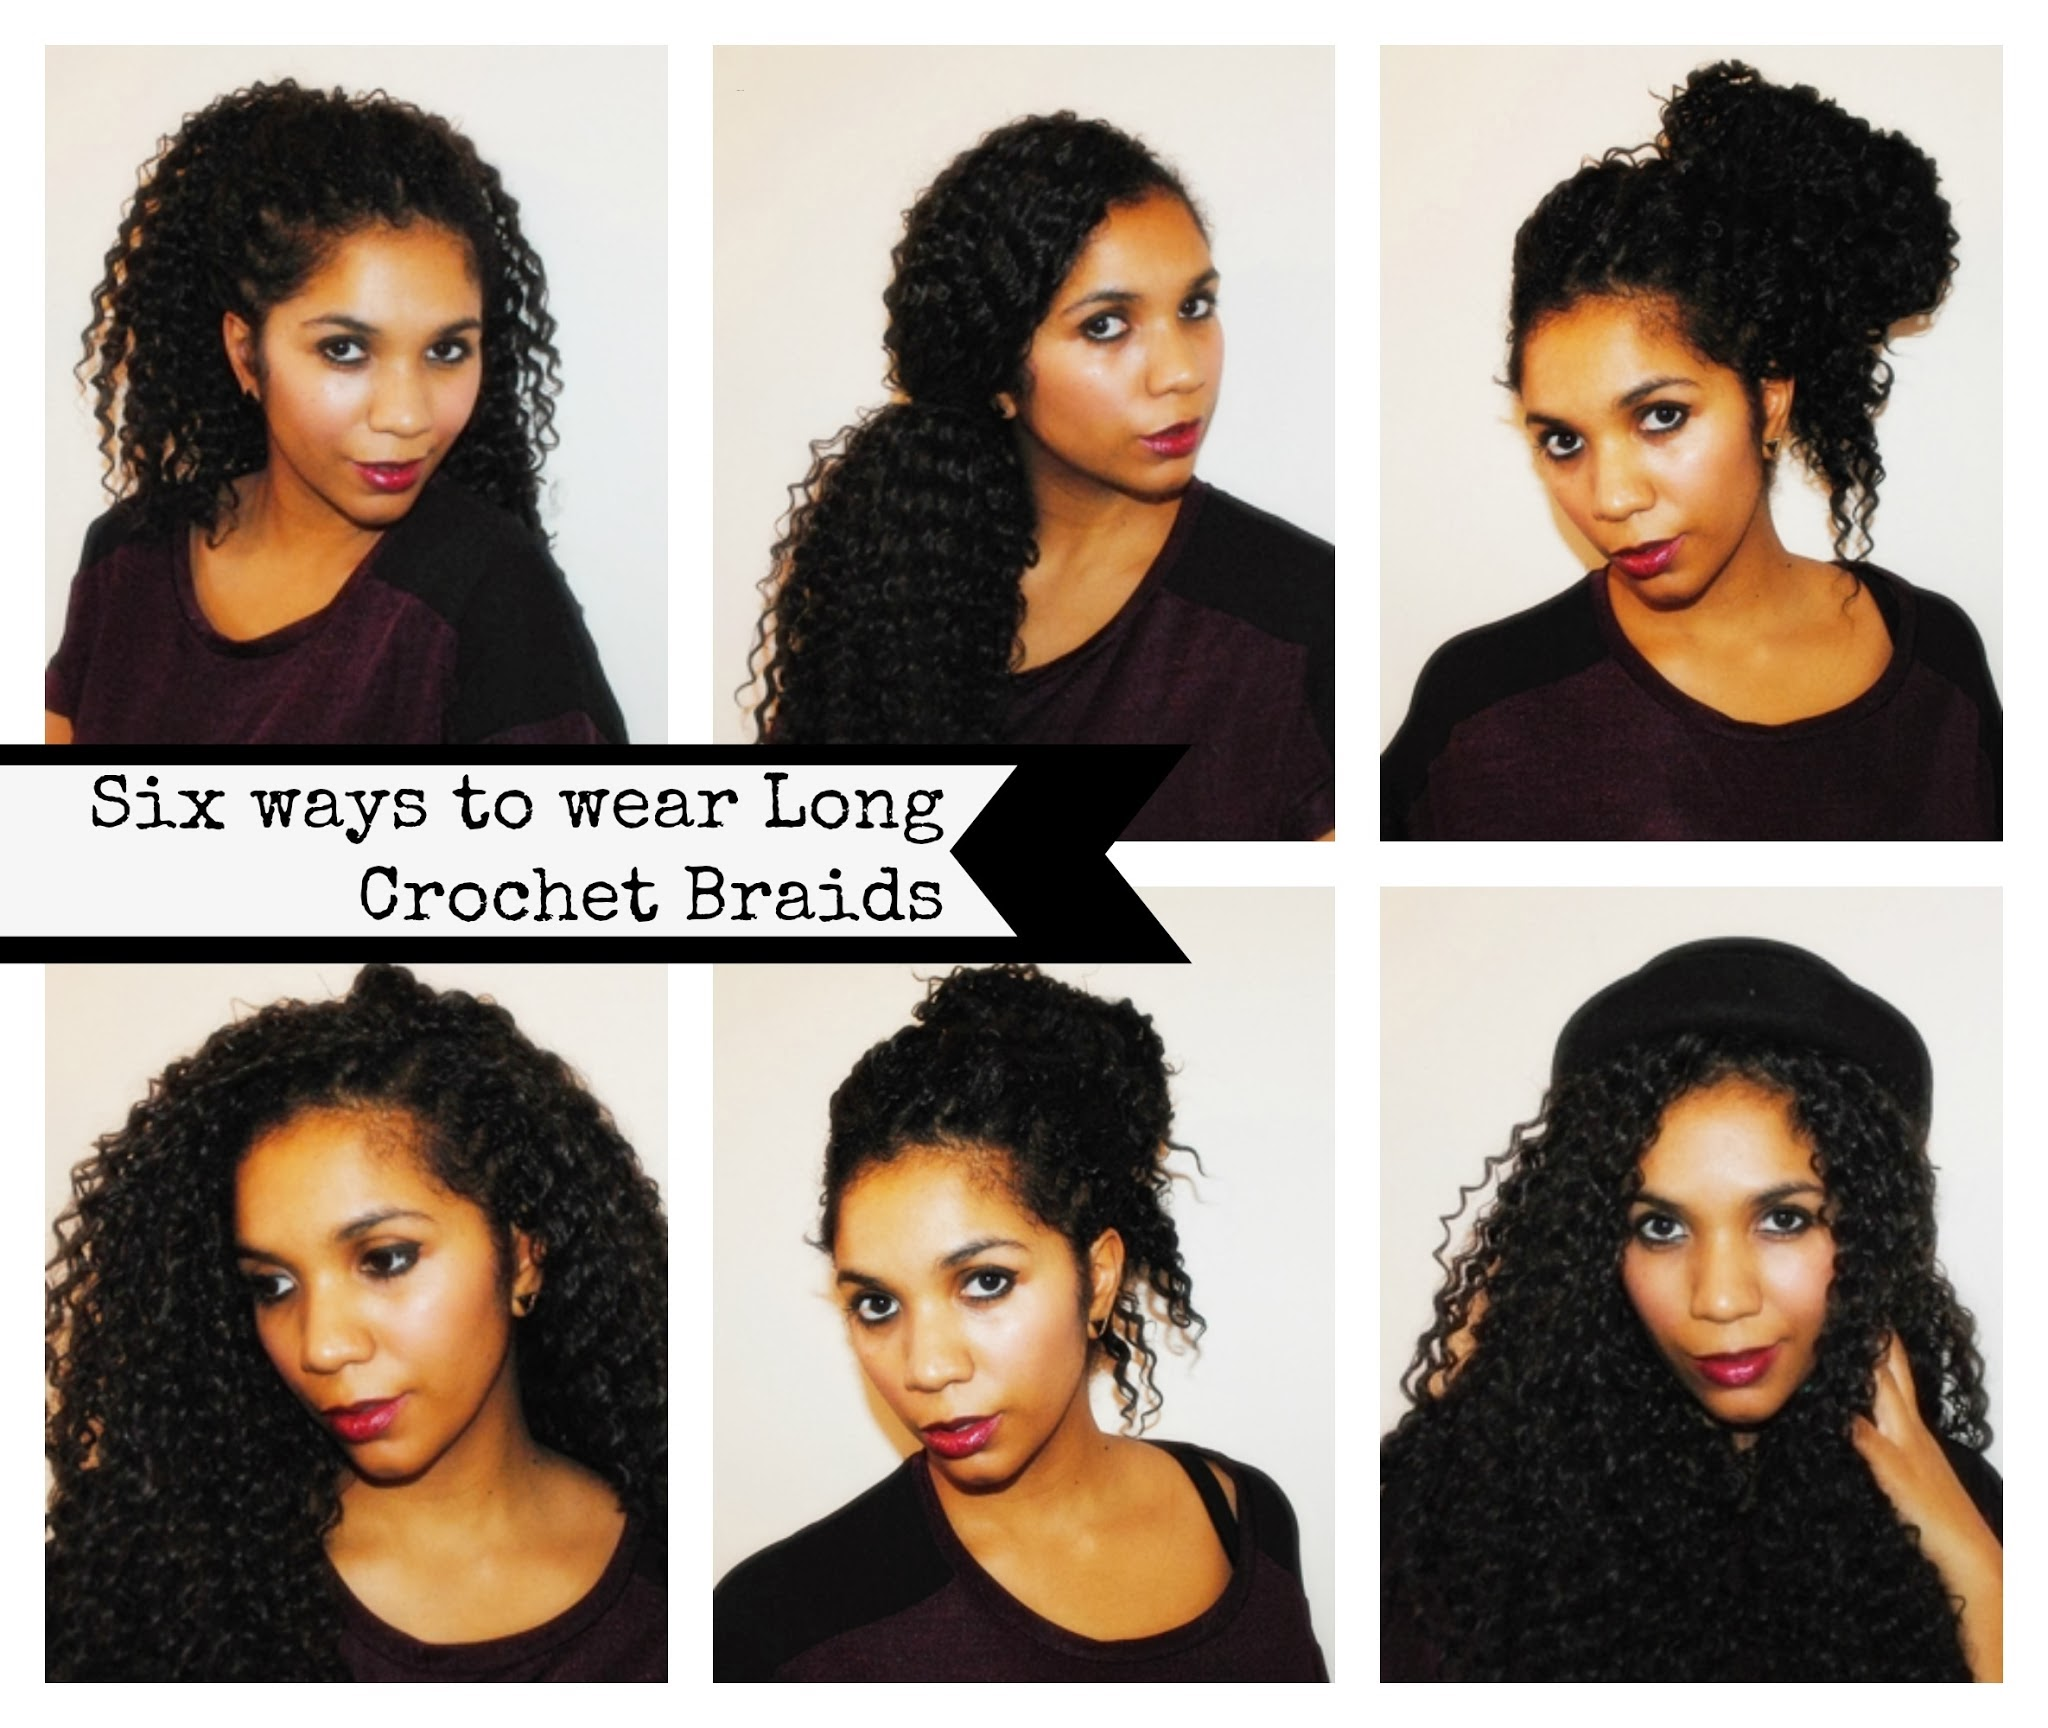 Crochet Braids Bun Styles : Six ways to wear Long Crochet Braids (right to left) - 1. Super high ...